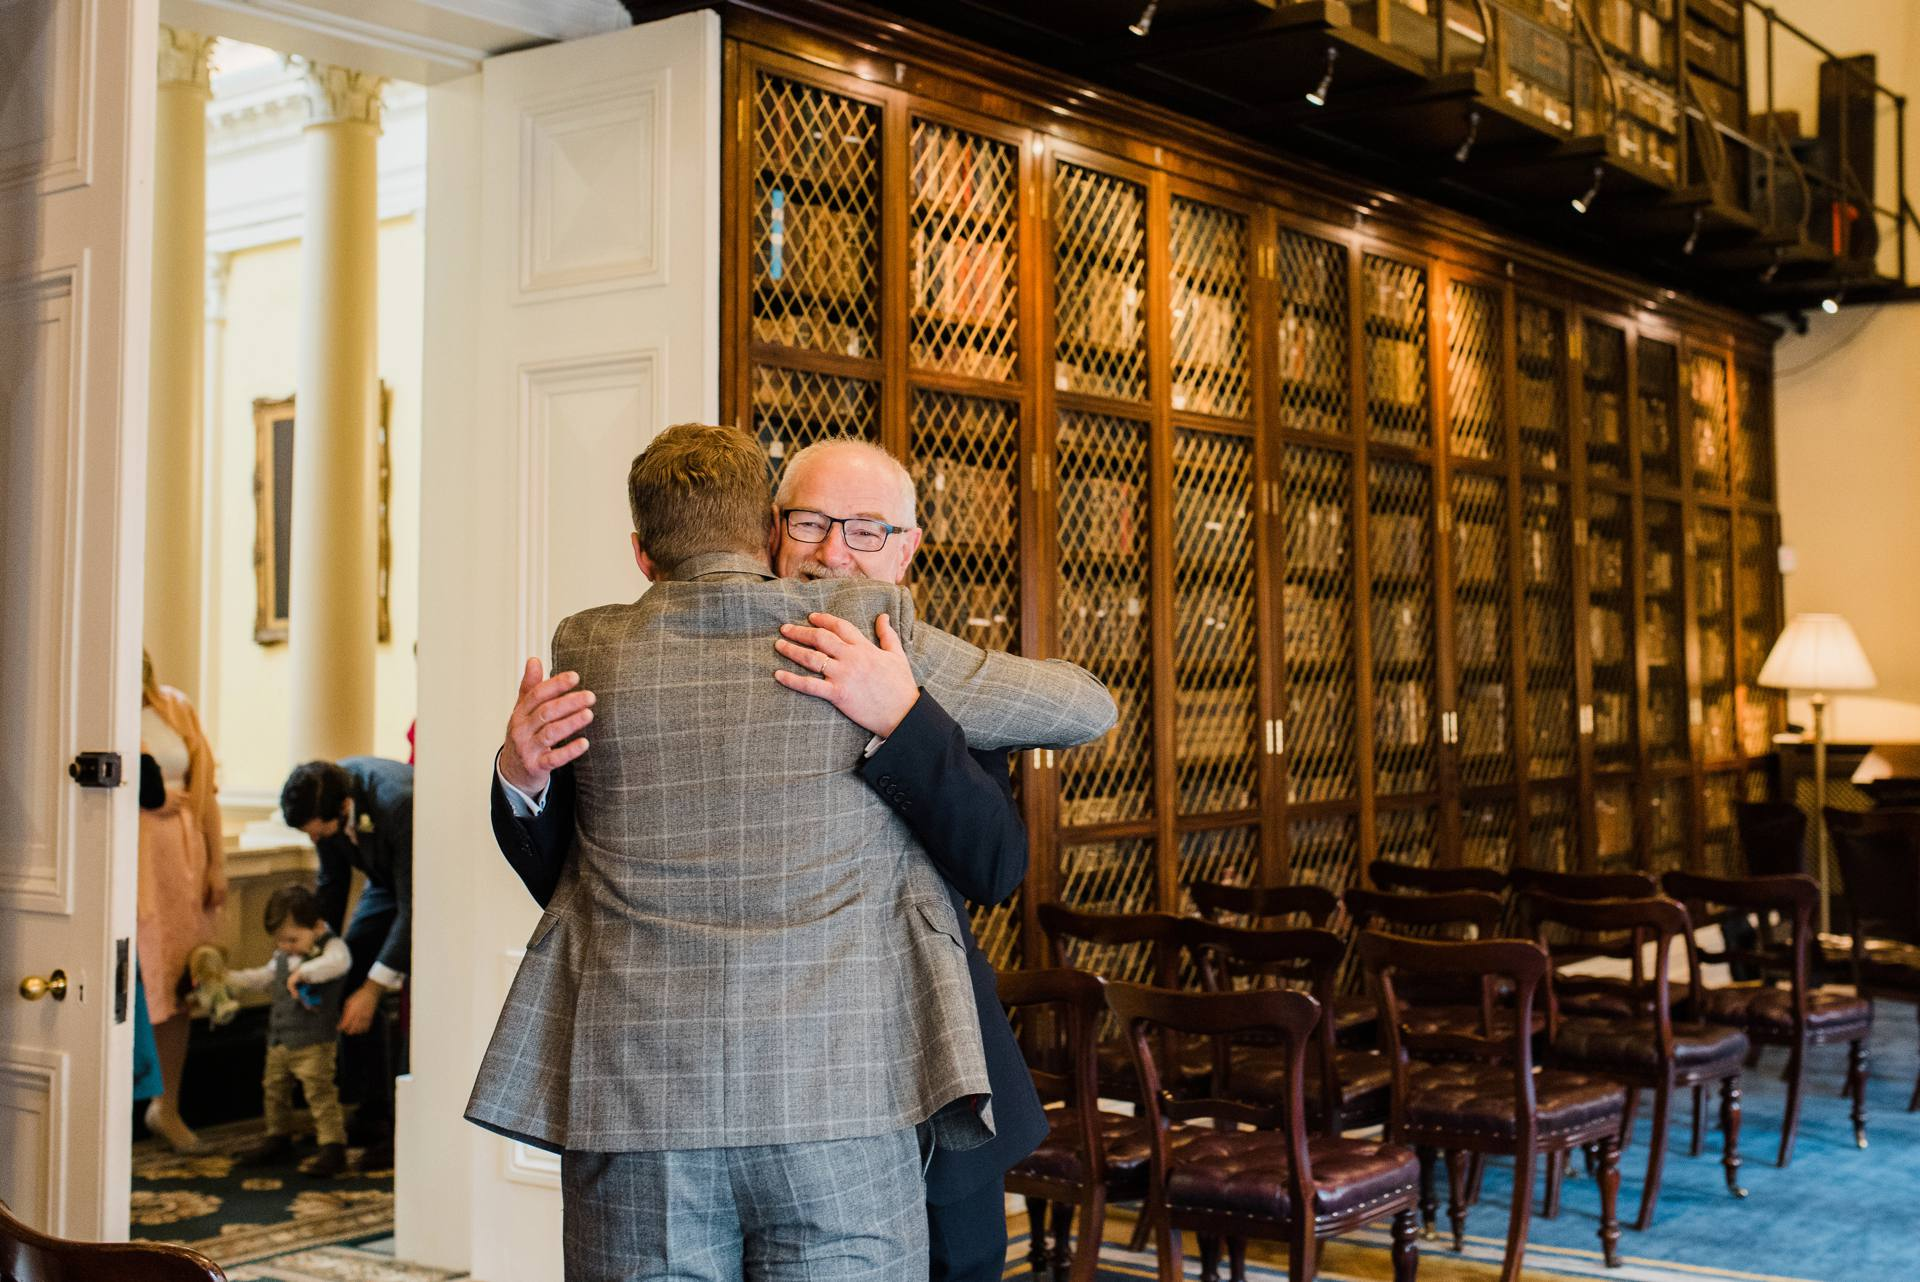 Groom hugging father in a library